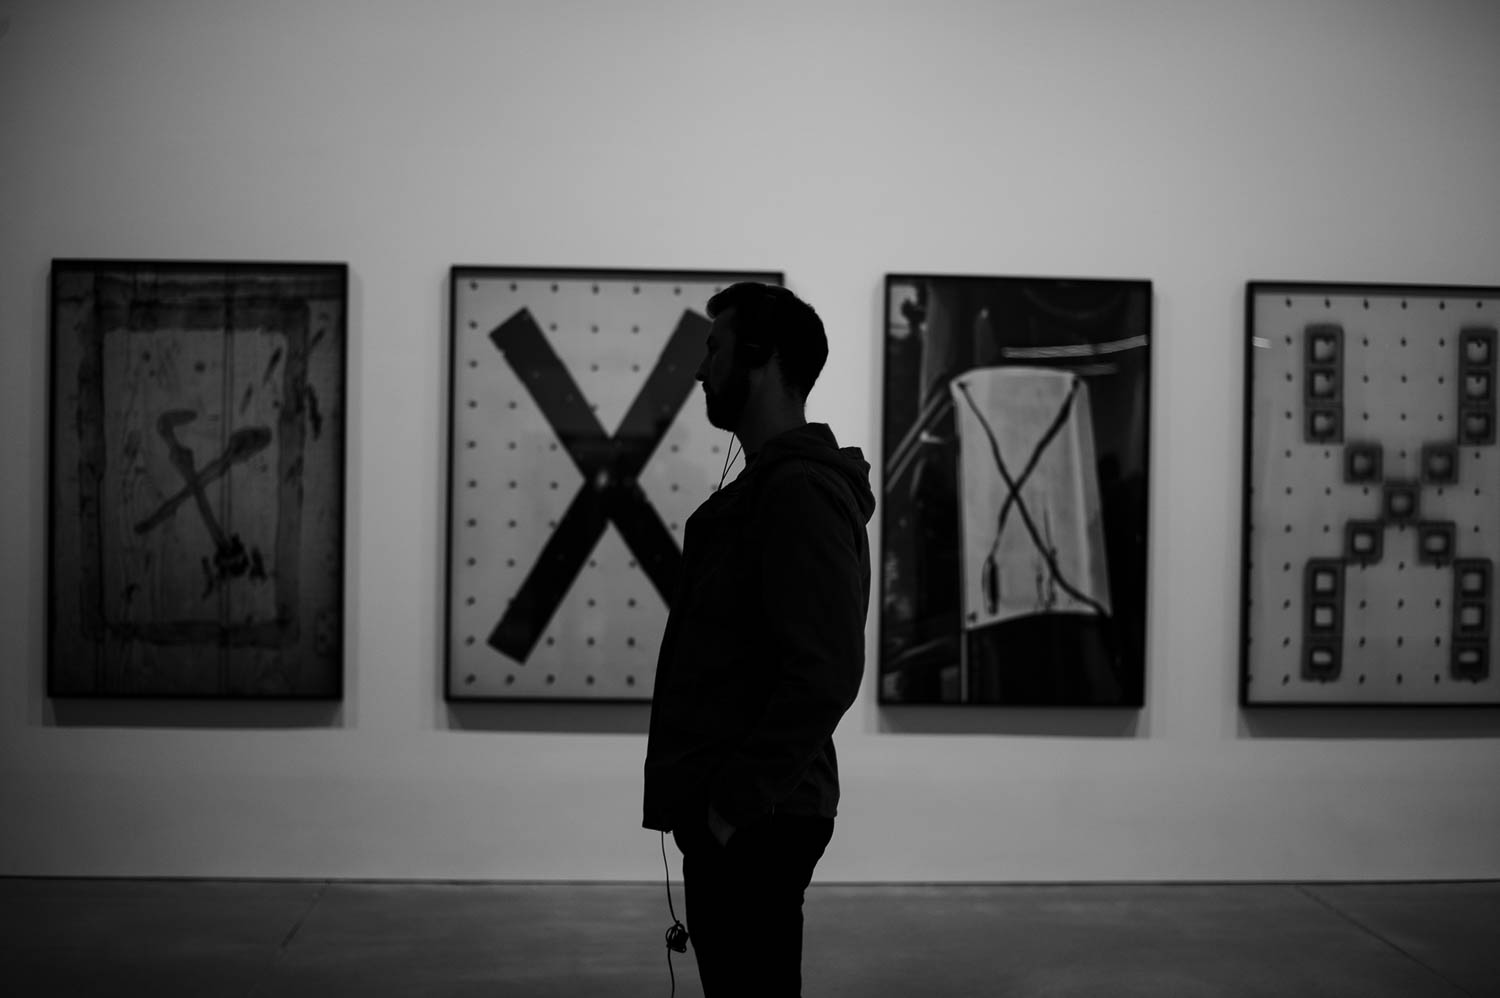 A man standing in front of four large prints of photographs of X-shapes